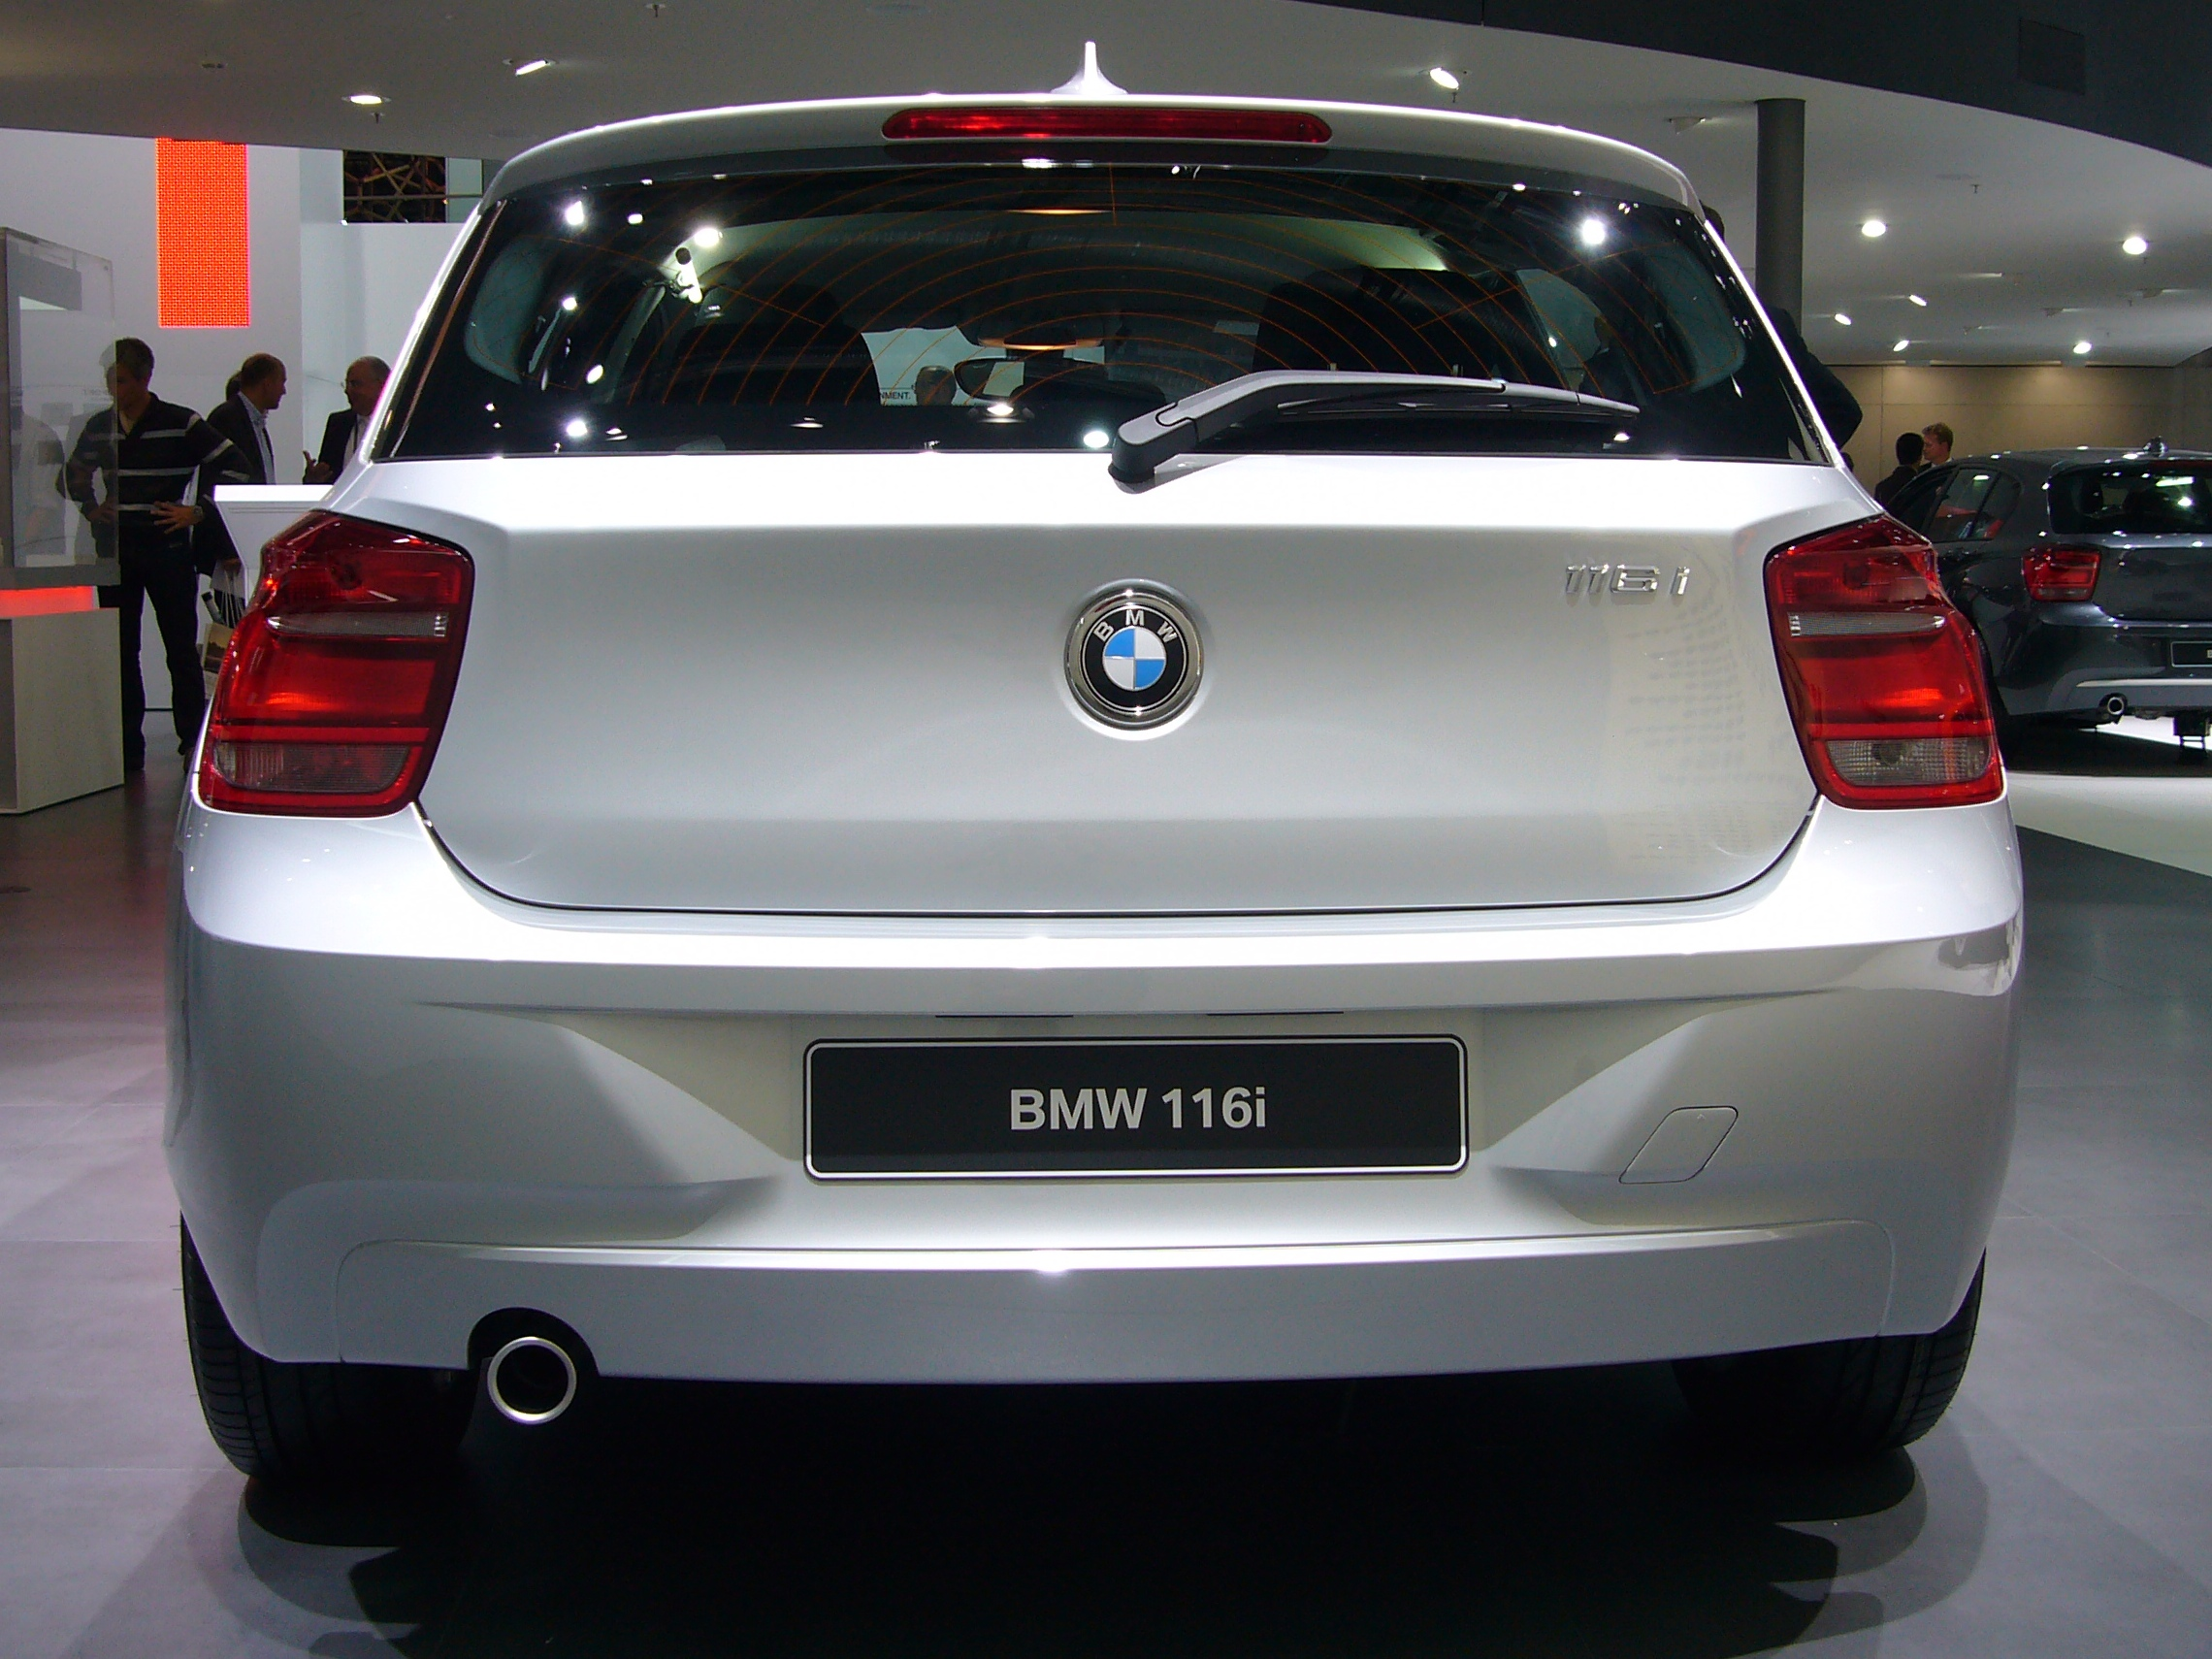 file bmw 116i f20 rear jpg wikimedia commons. Black Bedroom Furniture Sets. Home Design Ideas